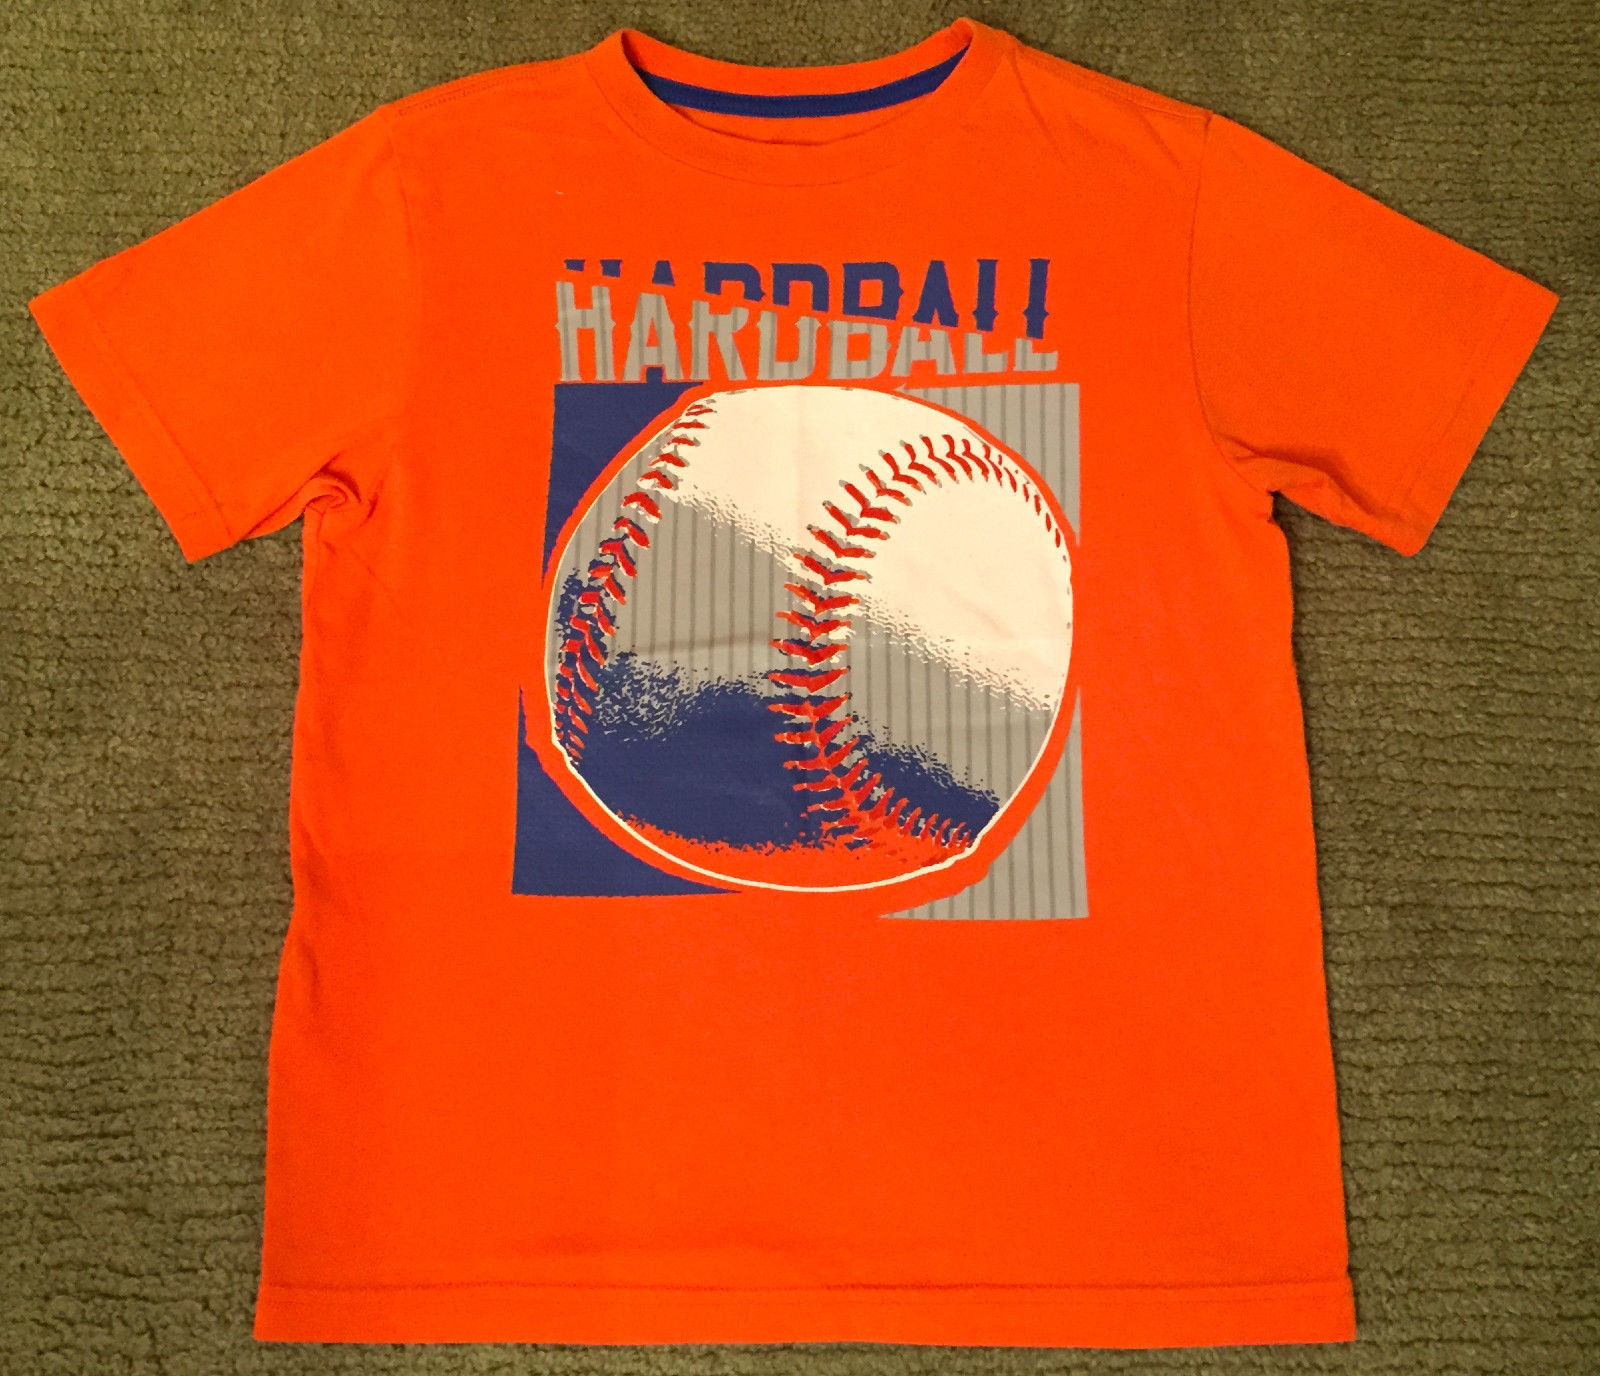 NEW BOY'S SZ M OLD NAVY ORANGE SHORT SLEEVE T-SHIRT BASEBALL HARDBALL